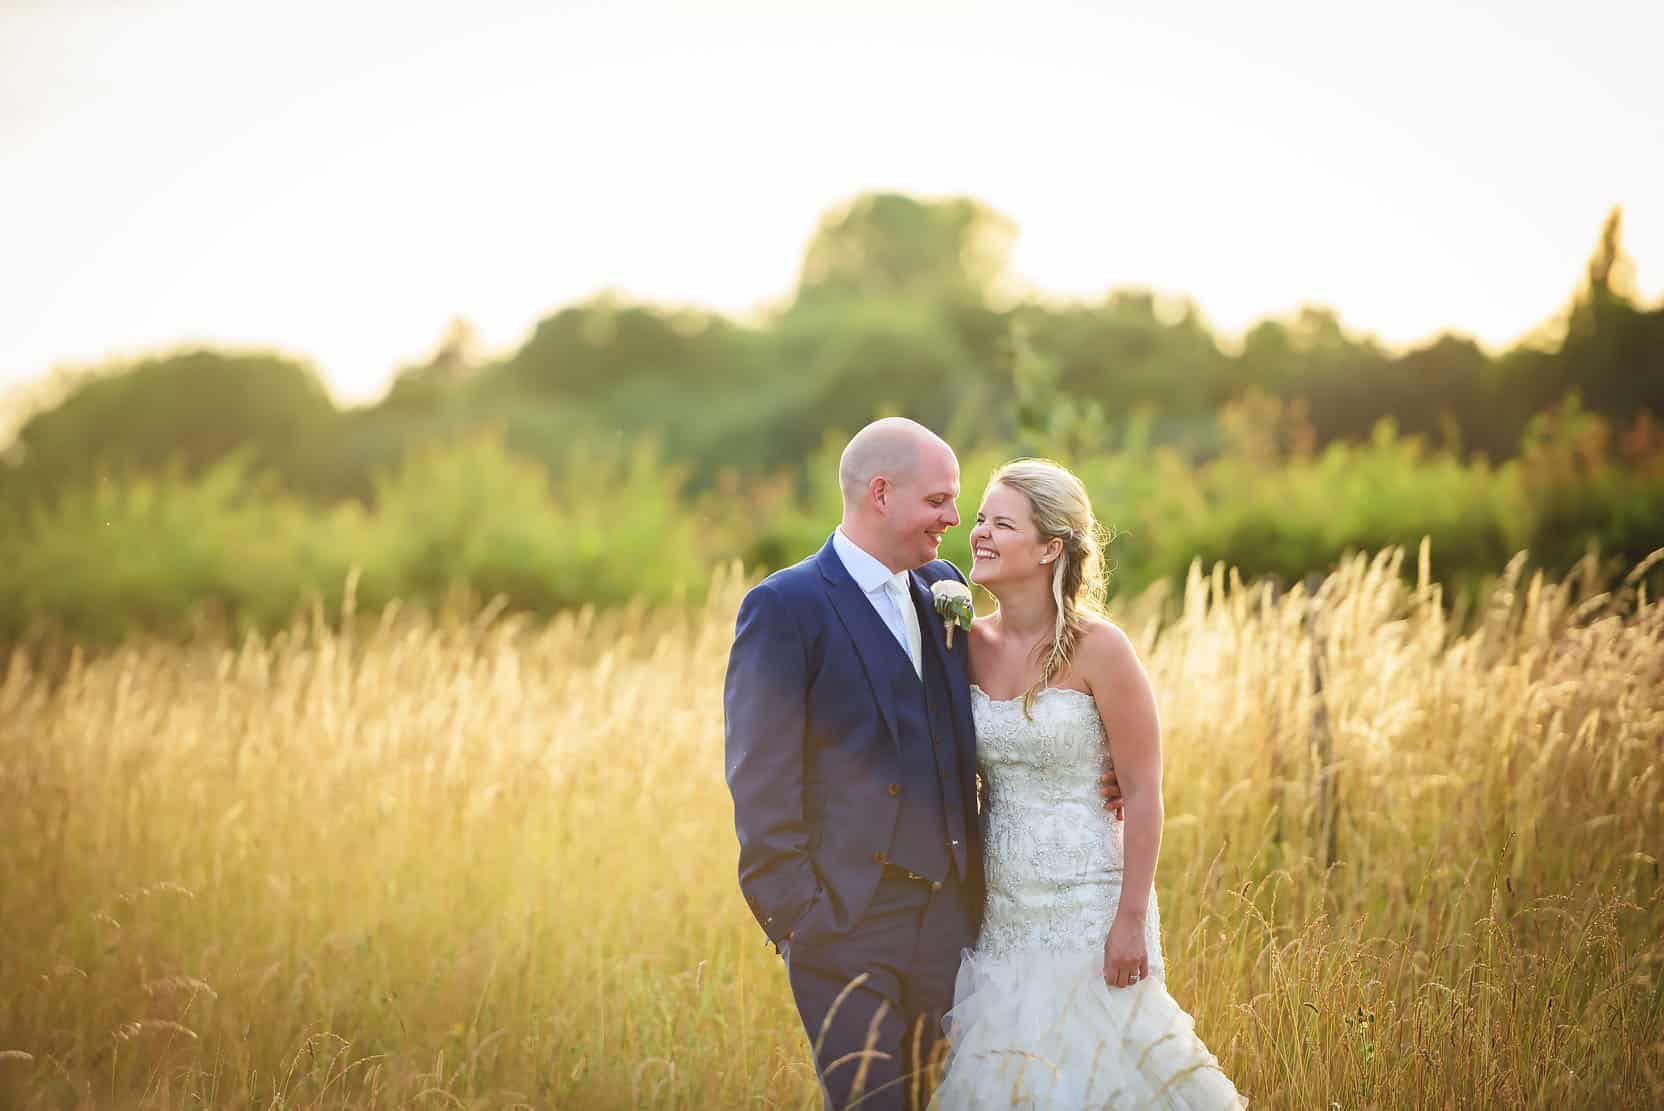 034_Maidens_Barn_Wedding_Essex_NJ_Justin_Bailey_Photography